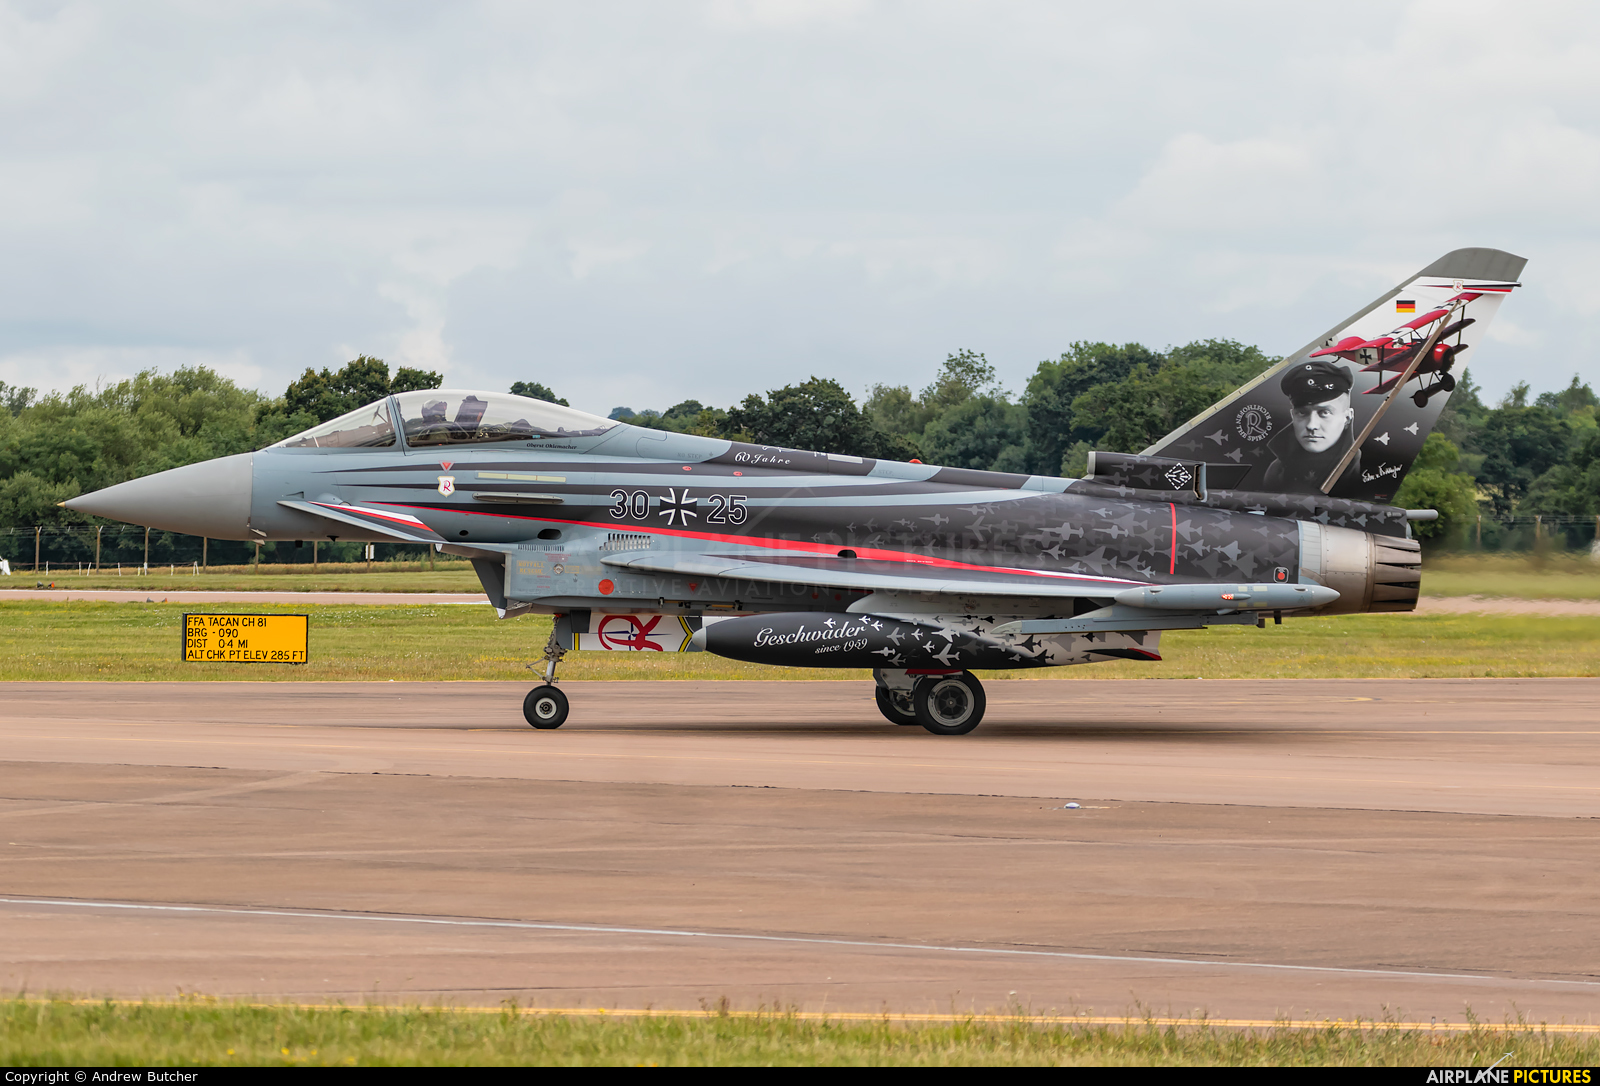 Germany - Air Force 30+25 aircraft at Fairford